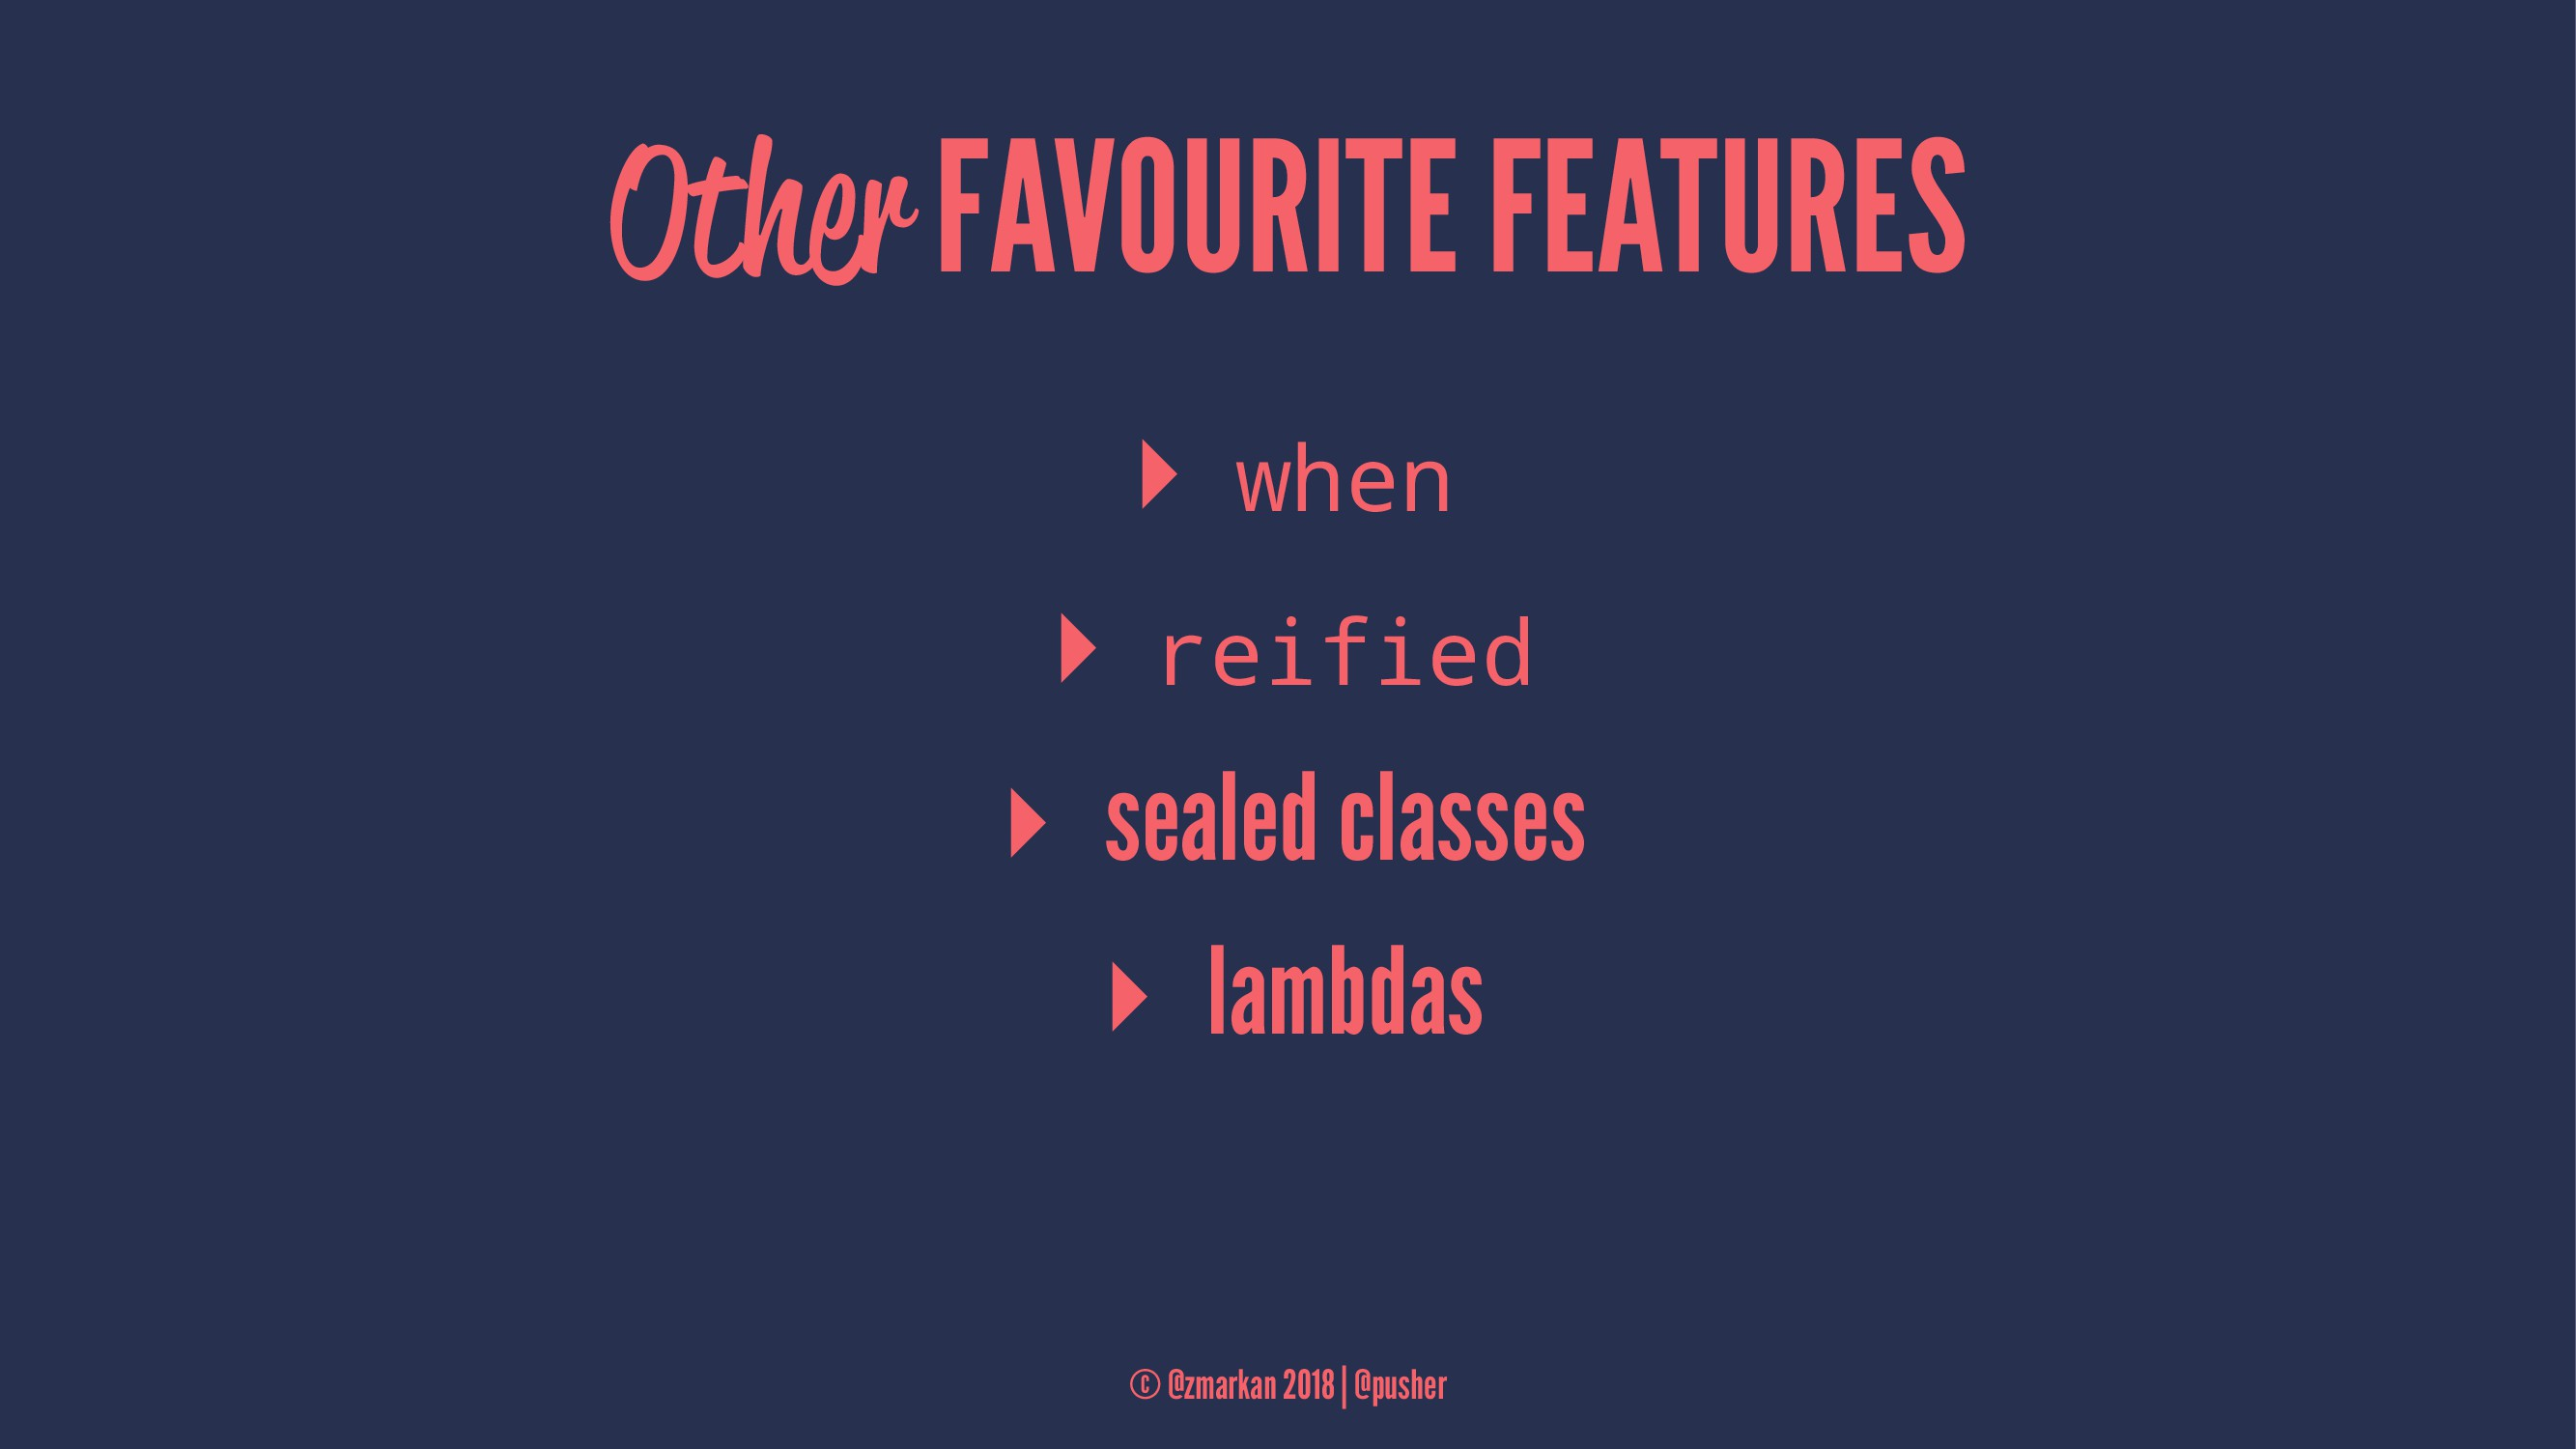 Other FAVOURITE FEATURES ▸ when ▸ reified ▸ sea...